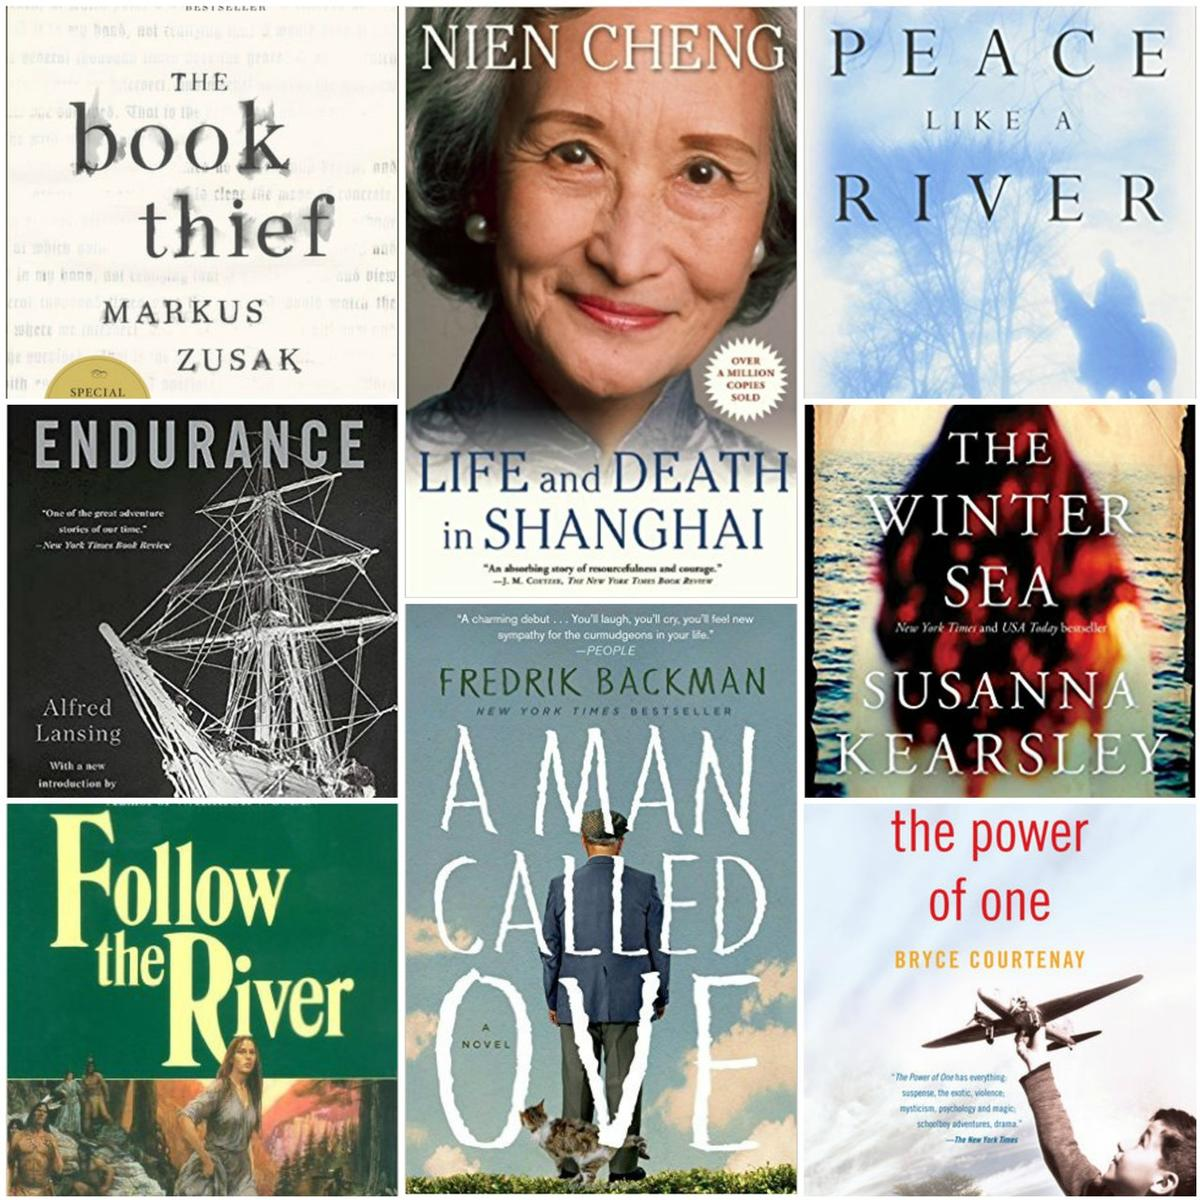 Robin Thorn of the Book Club recommended these eight books.